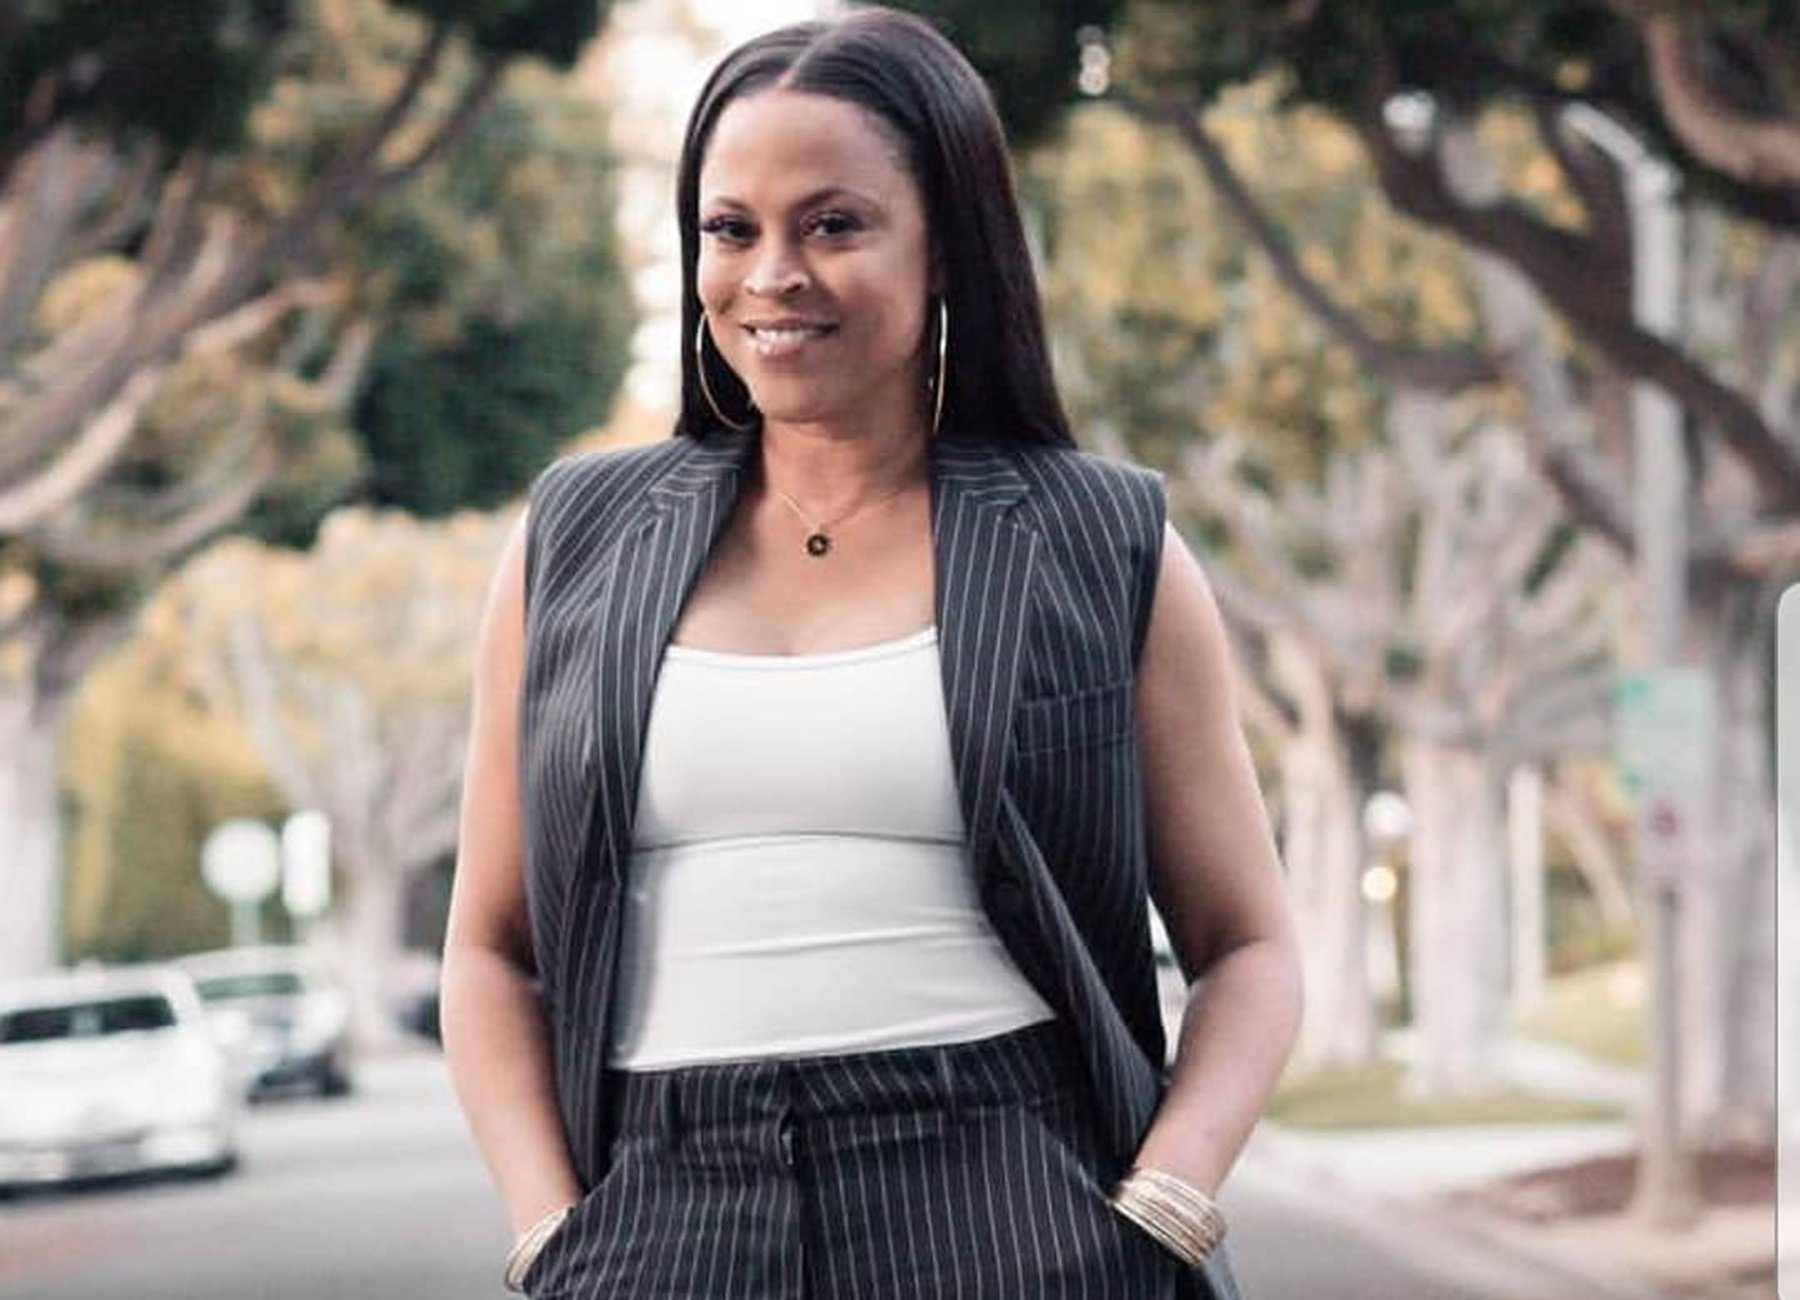 The Mo'Kelly Show – WandaVision Recap * Shaunie O'Neal Previews S9 of 'Basketball Wives' * Nickelodeon's 'Are You Afraid of the Dark?' (LISTEN)